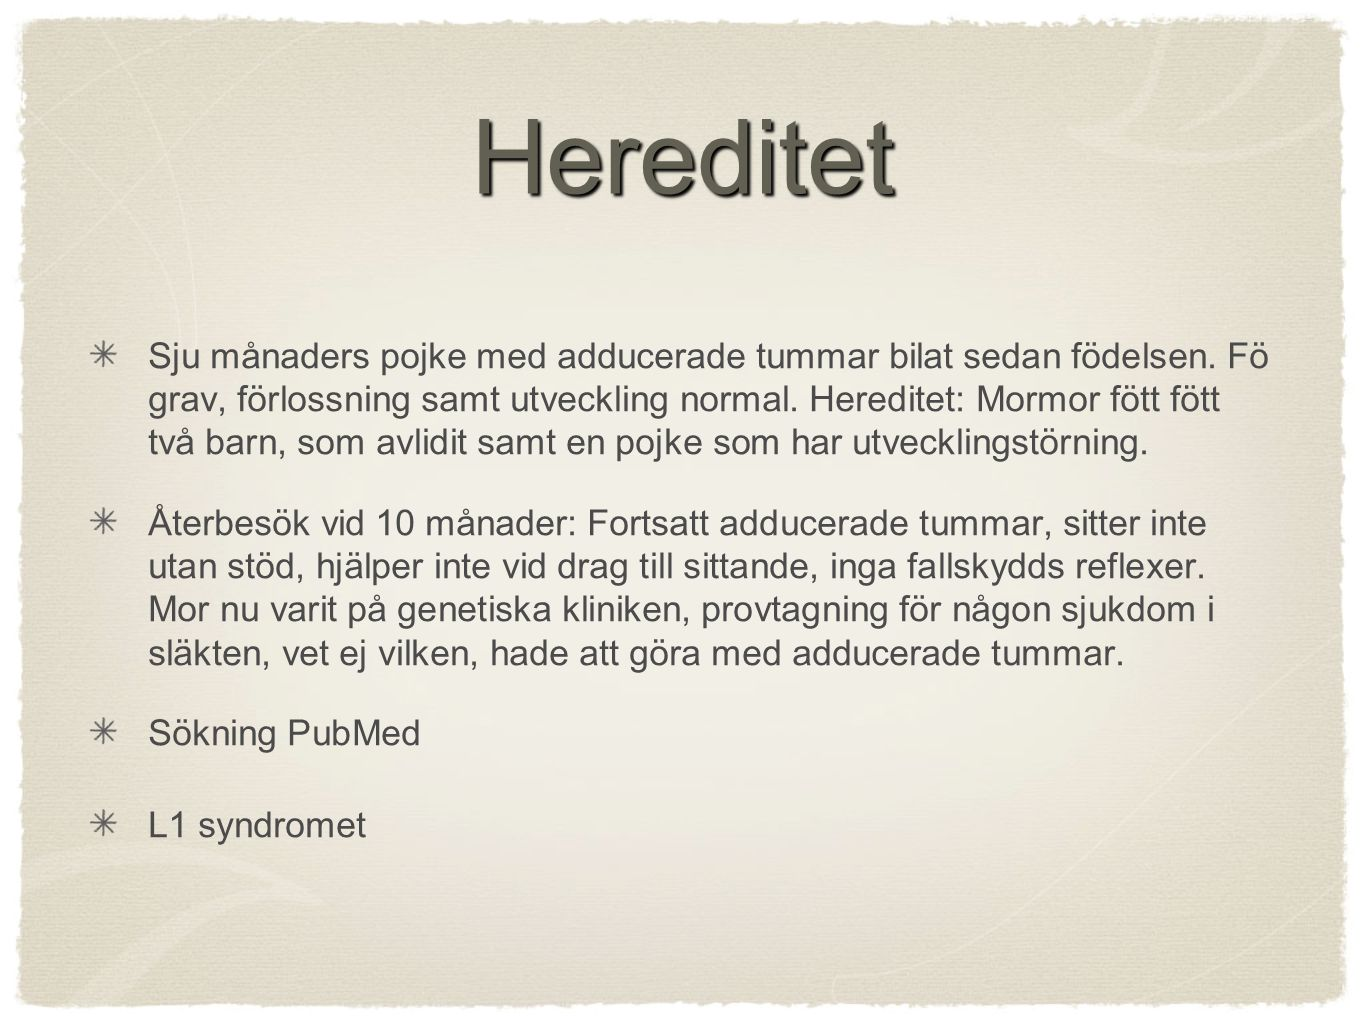 Hereditet